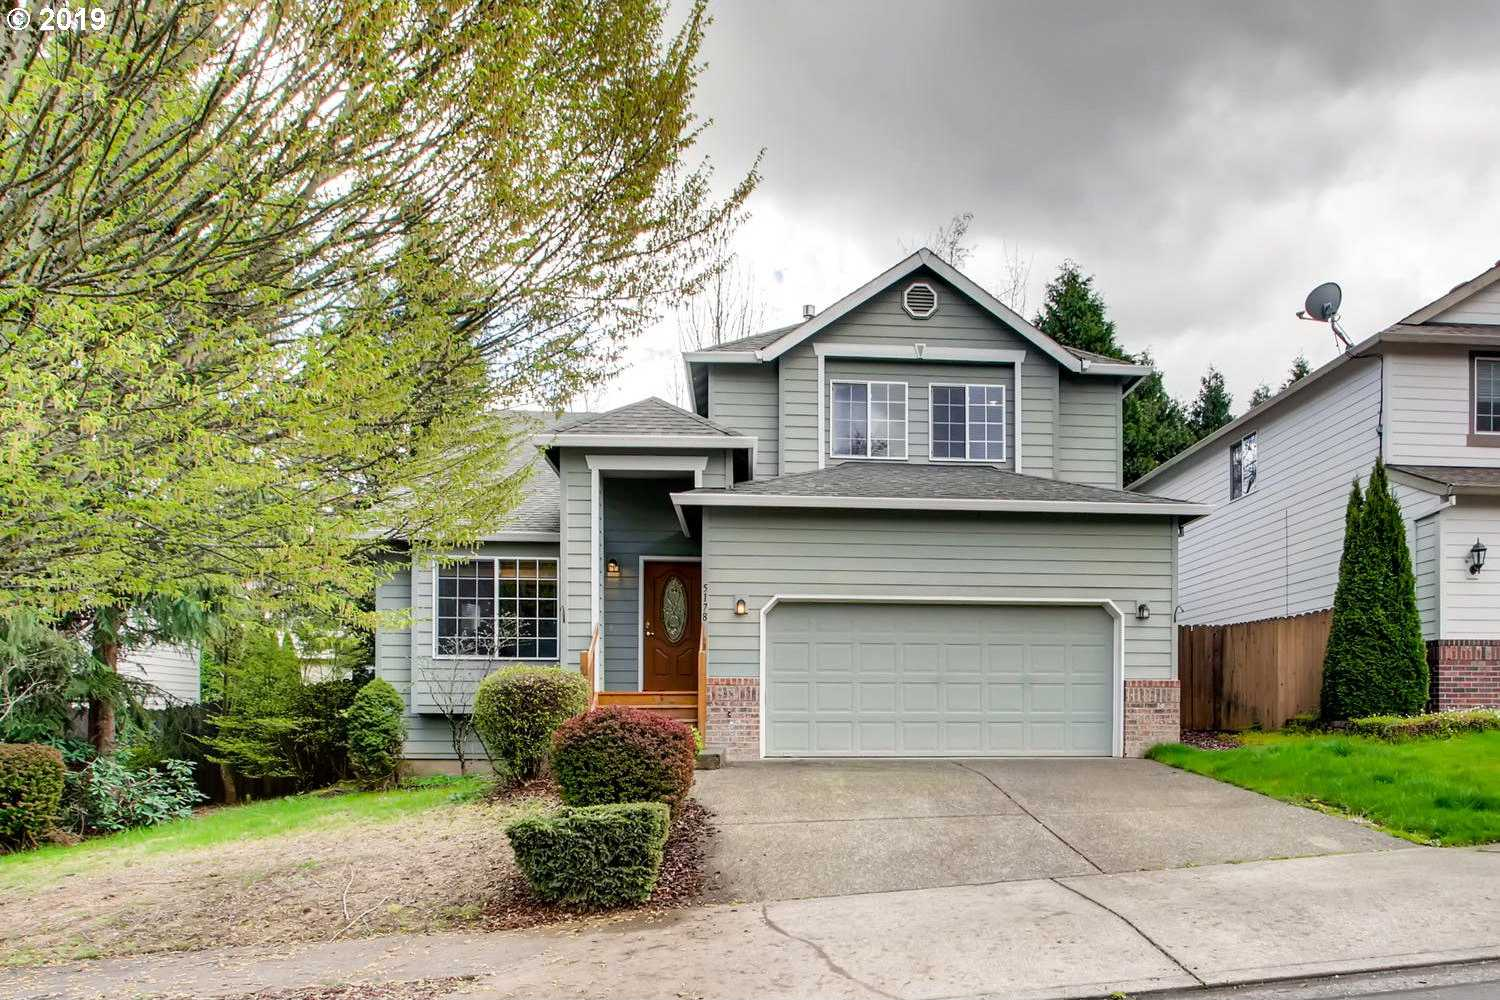 $364,990 - 4Br/3Ba -  for Sale in Gresham